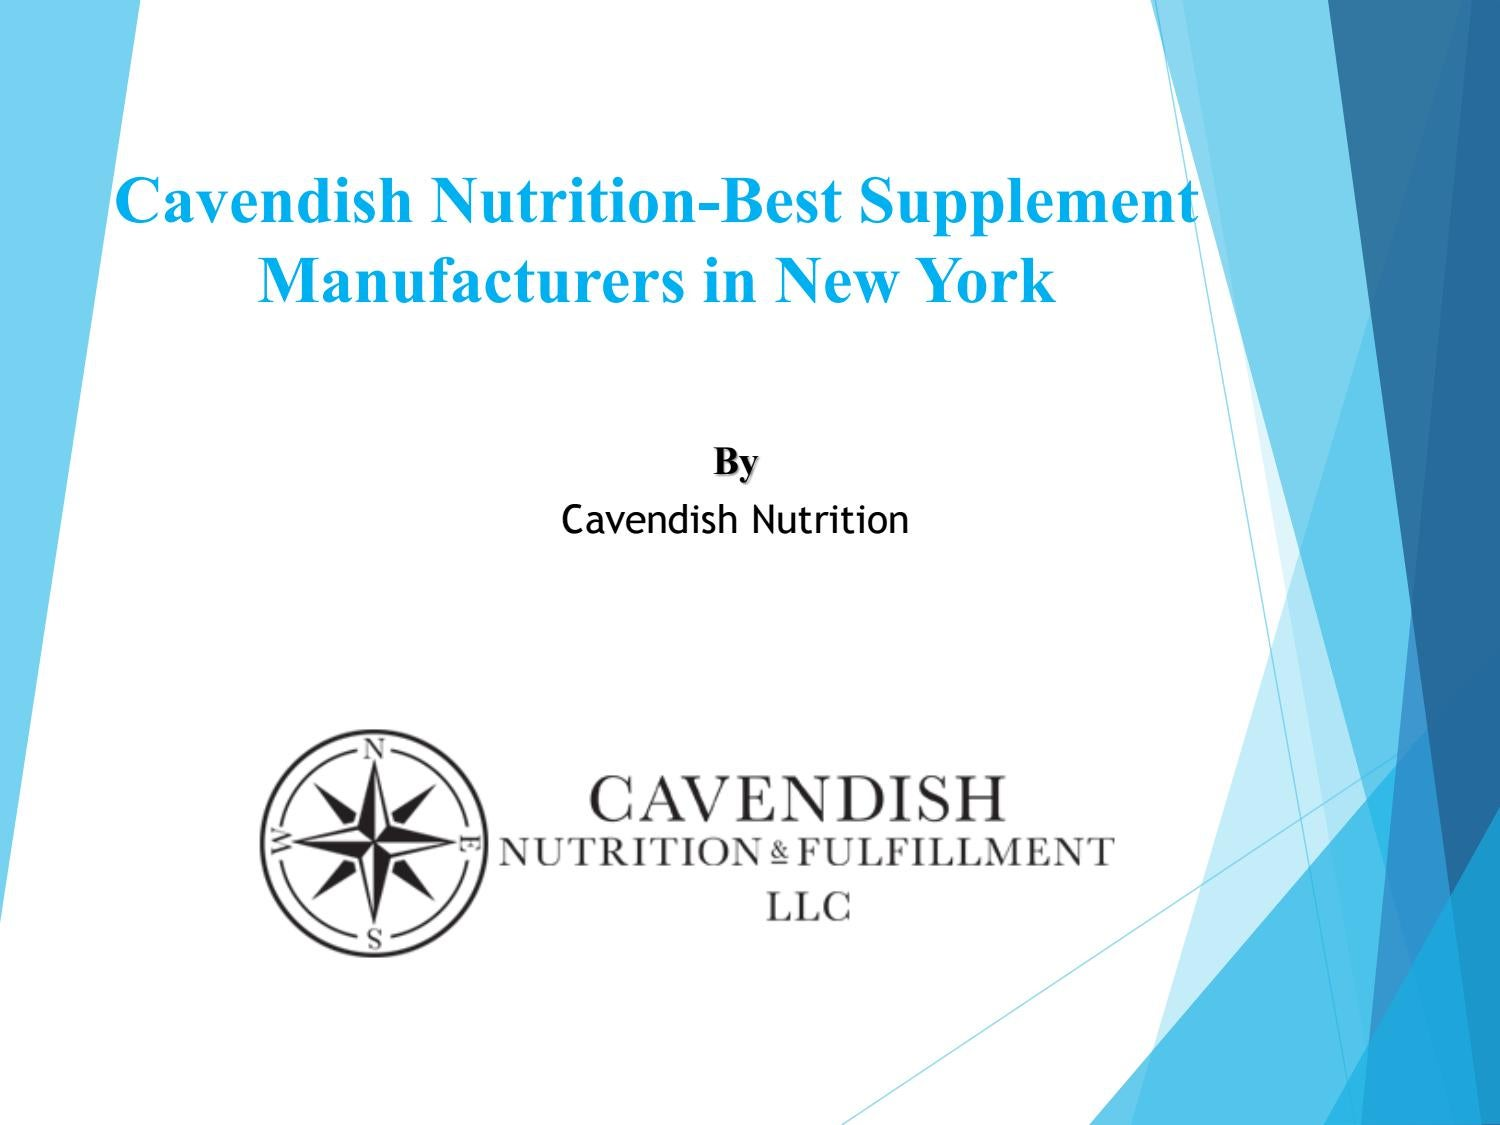 Cavendish Nutrition-Best Supplement Manufacturers in New York by